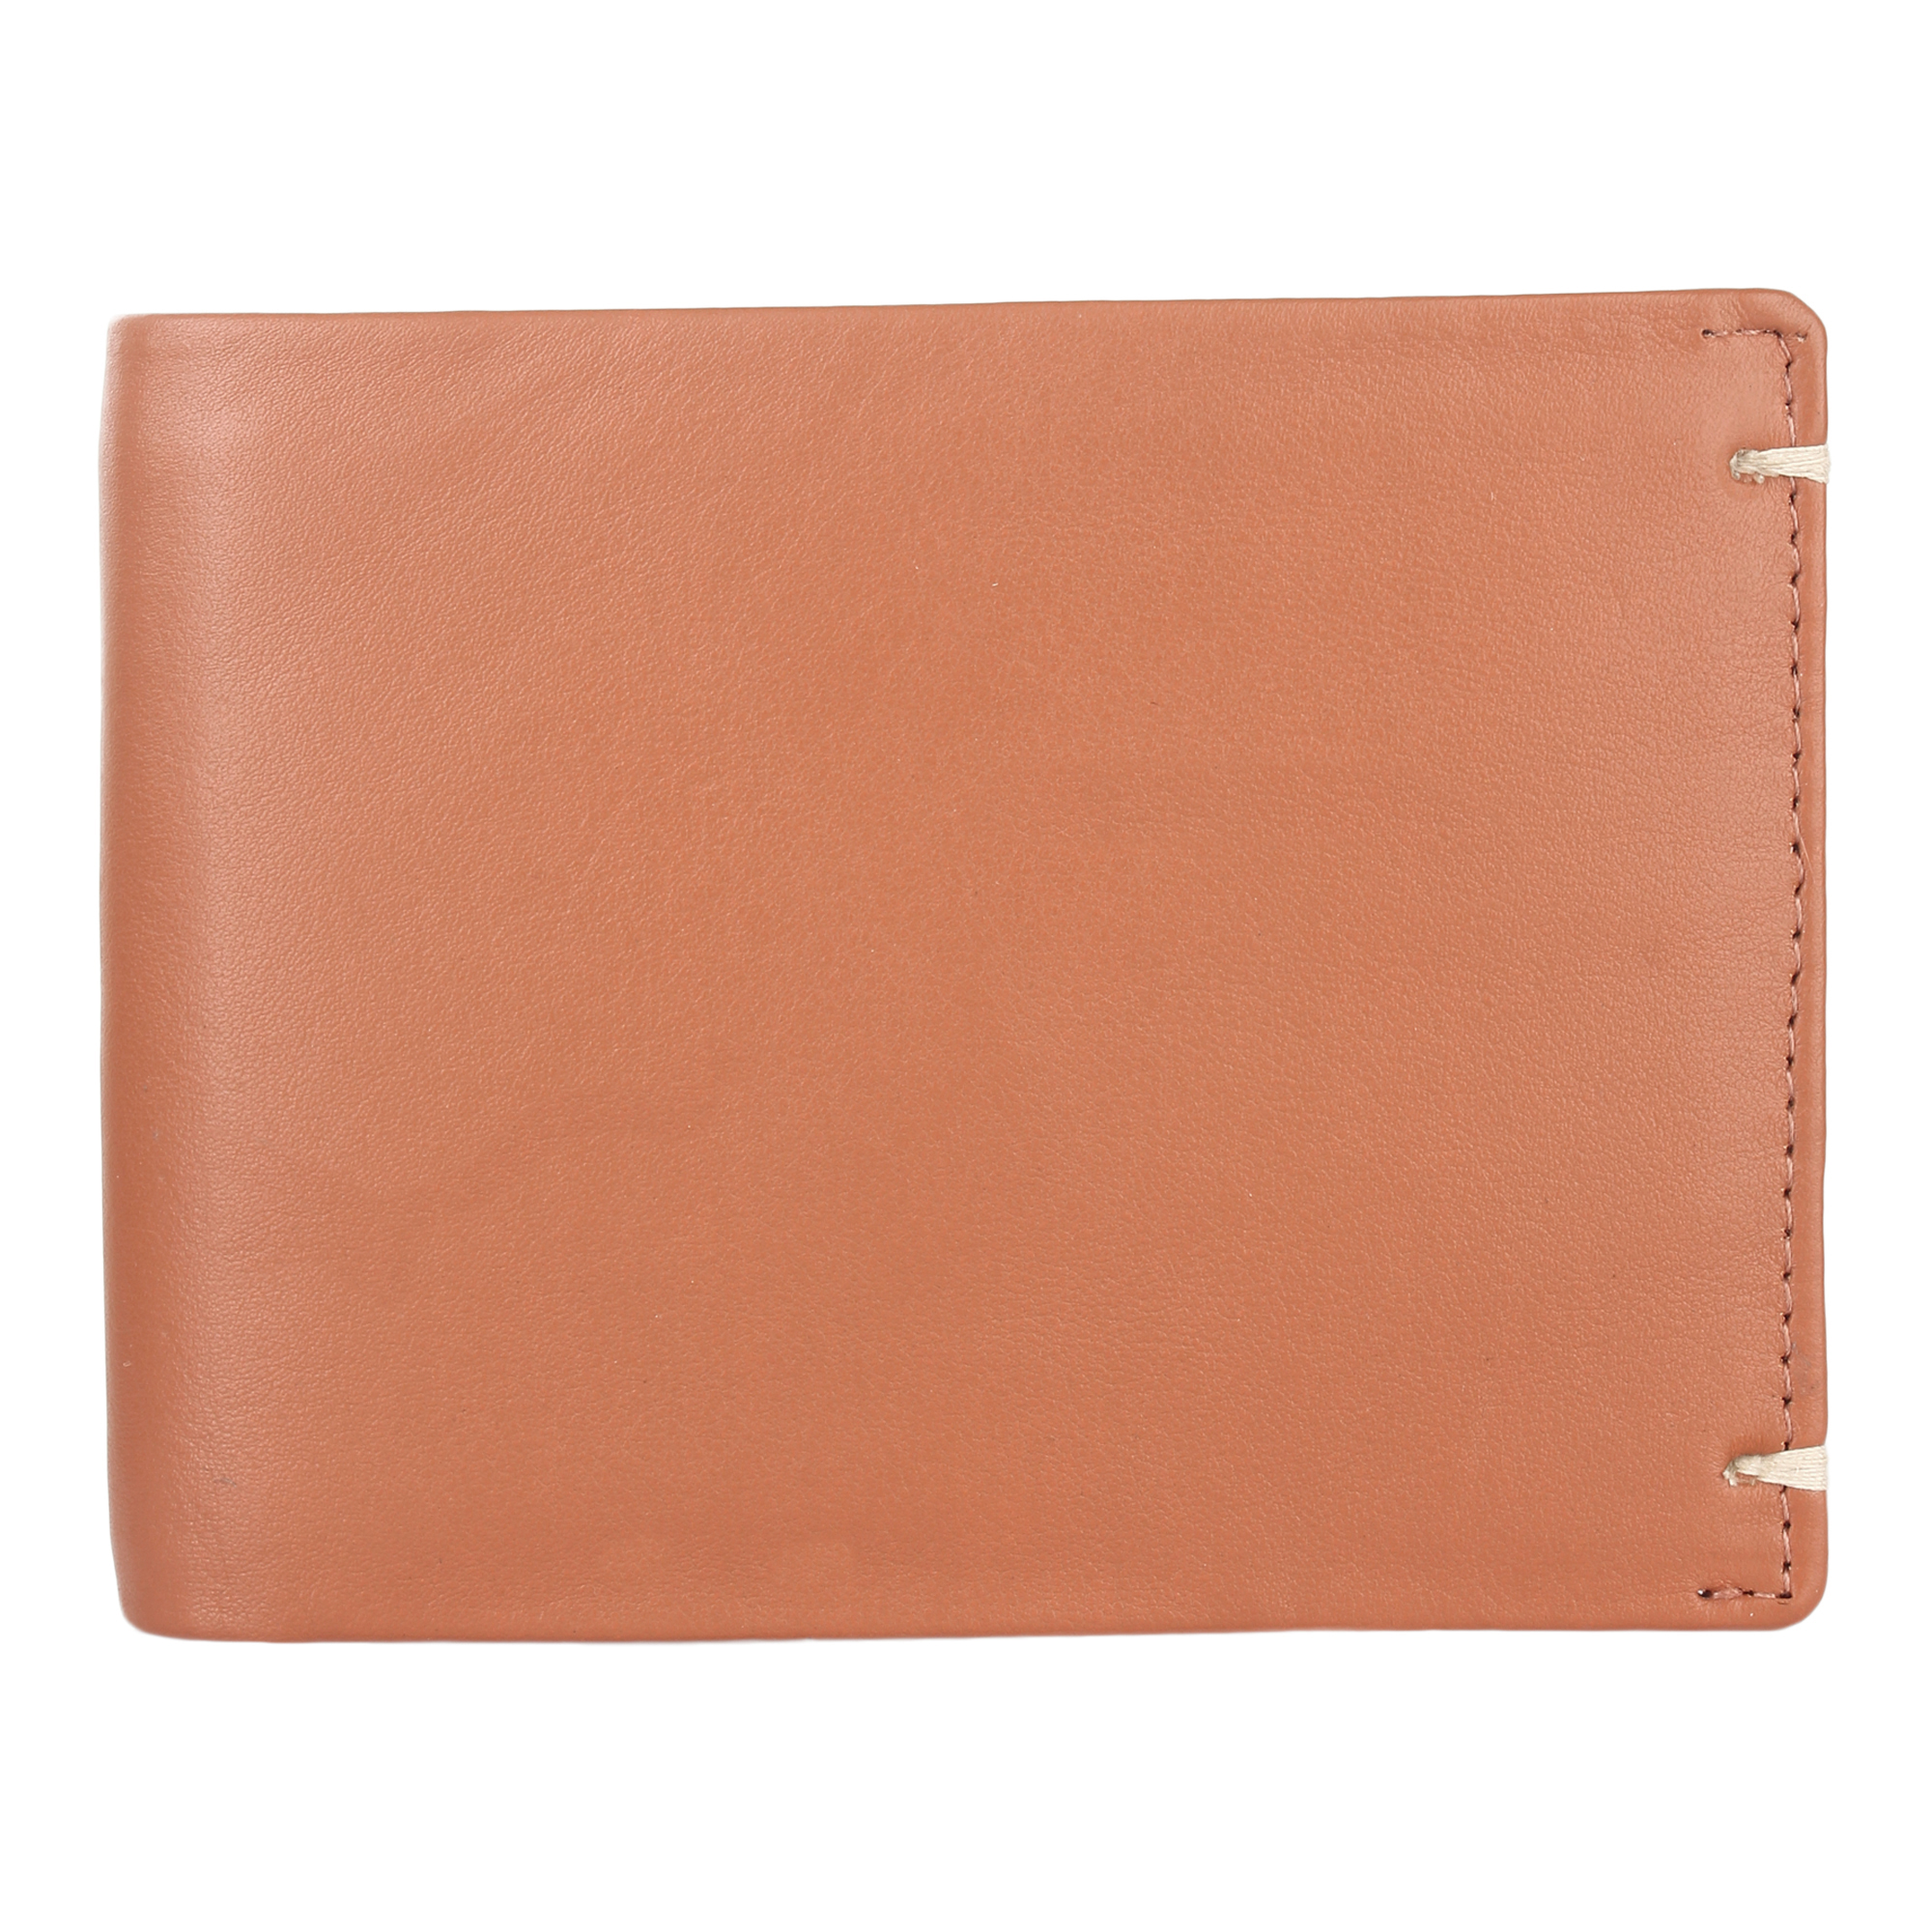 Leather Wallets Manufacturers in United-arab-emirates, Leather Wallets Suppliers in United-arab-emirates, Leather Wallets Wholesalers in United-arab-emirates, Leather Wallets Traders in United-arab-emirates, custom leather wallet manufacturers in United-arab-emirates, Leathe